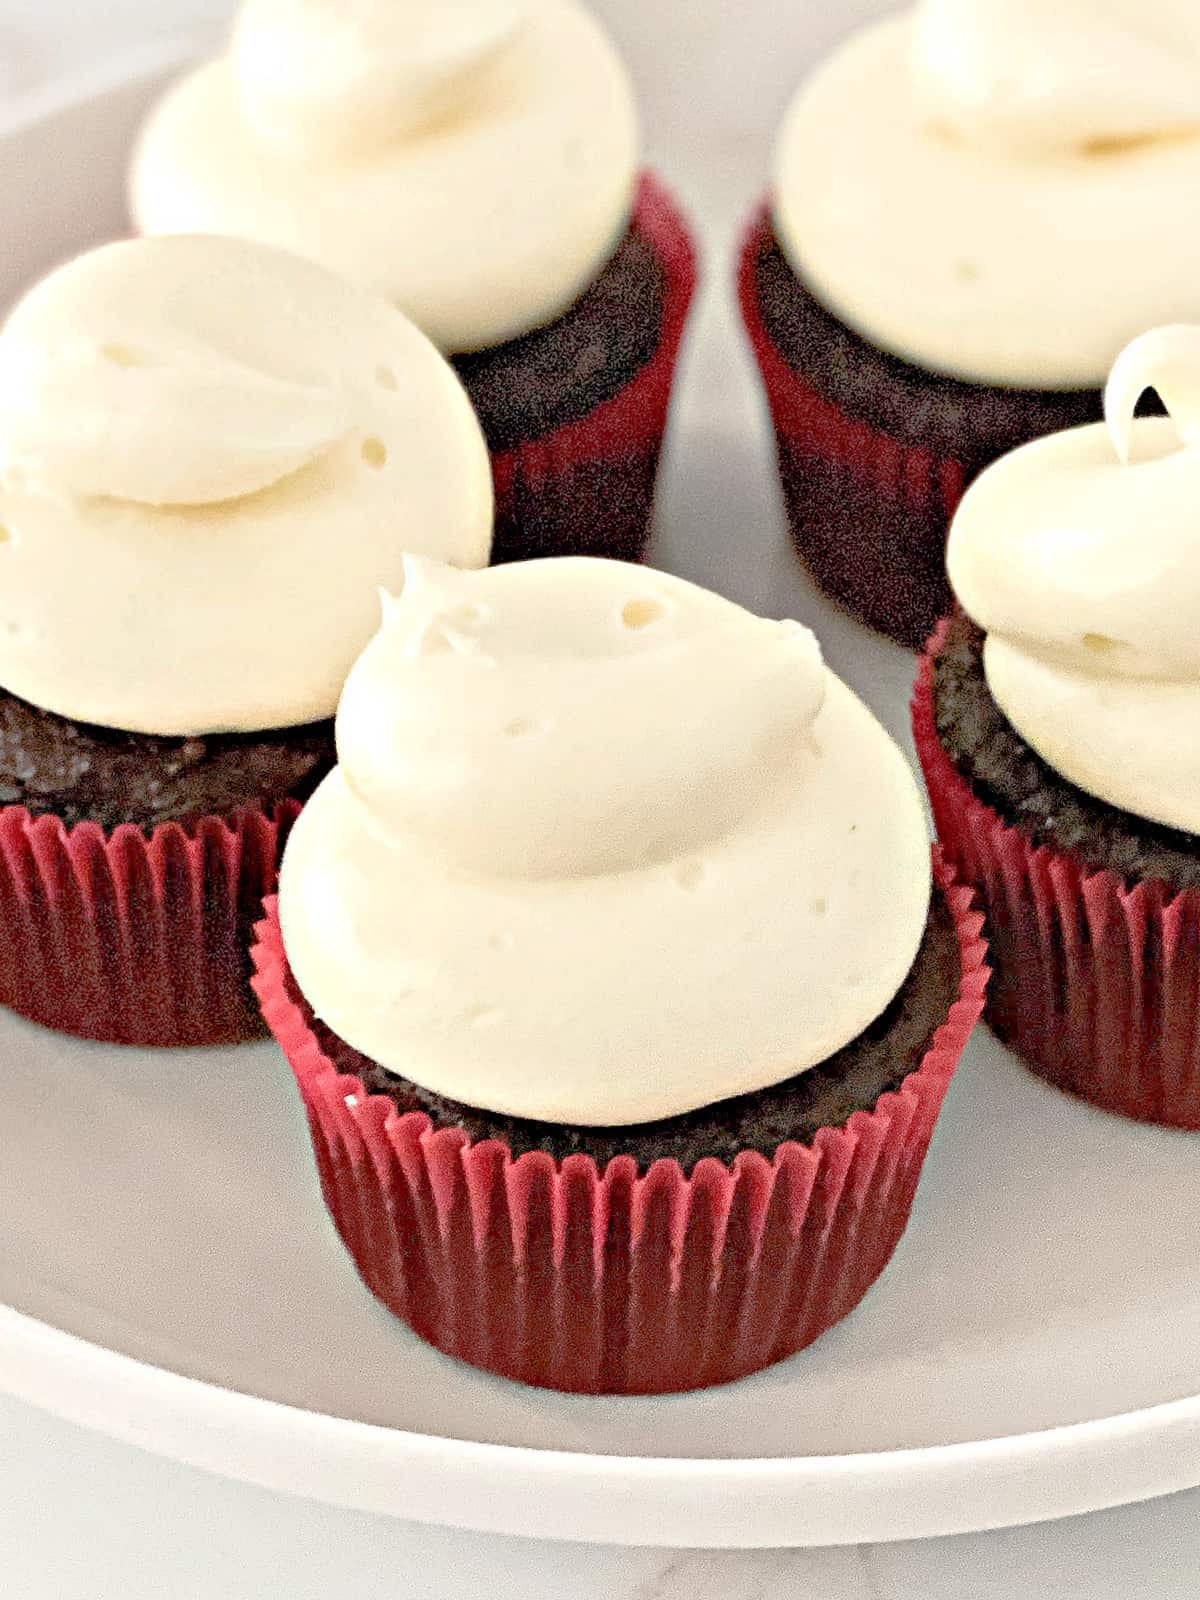 chocolate cupcakes decorated with cream cheese frosting on a plate